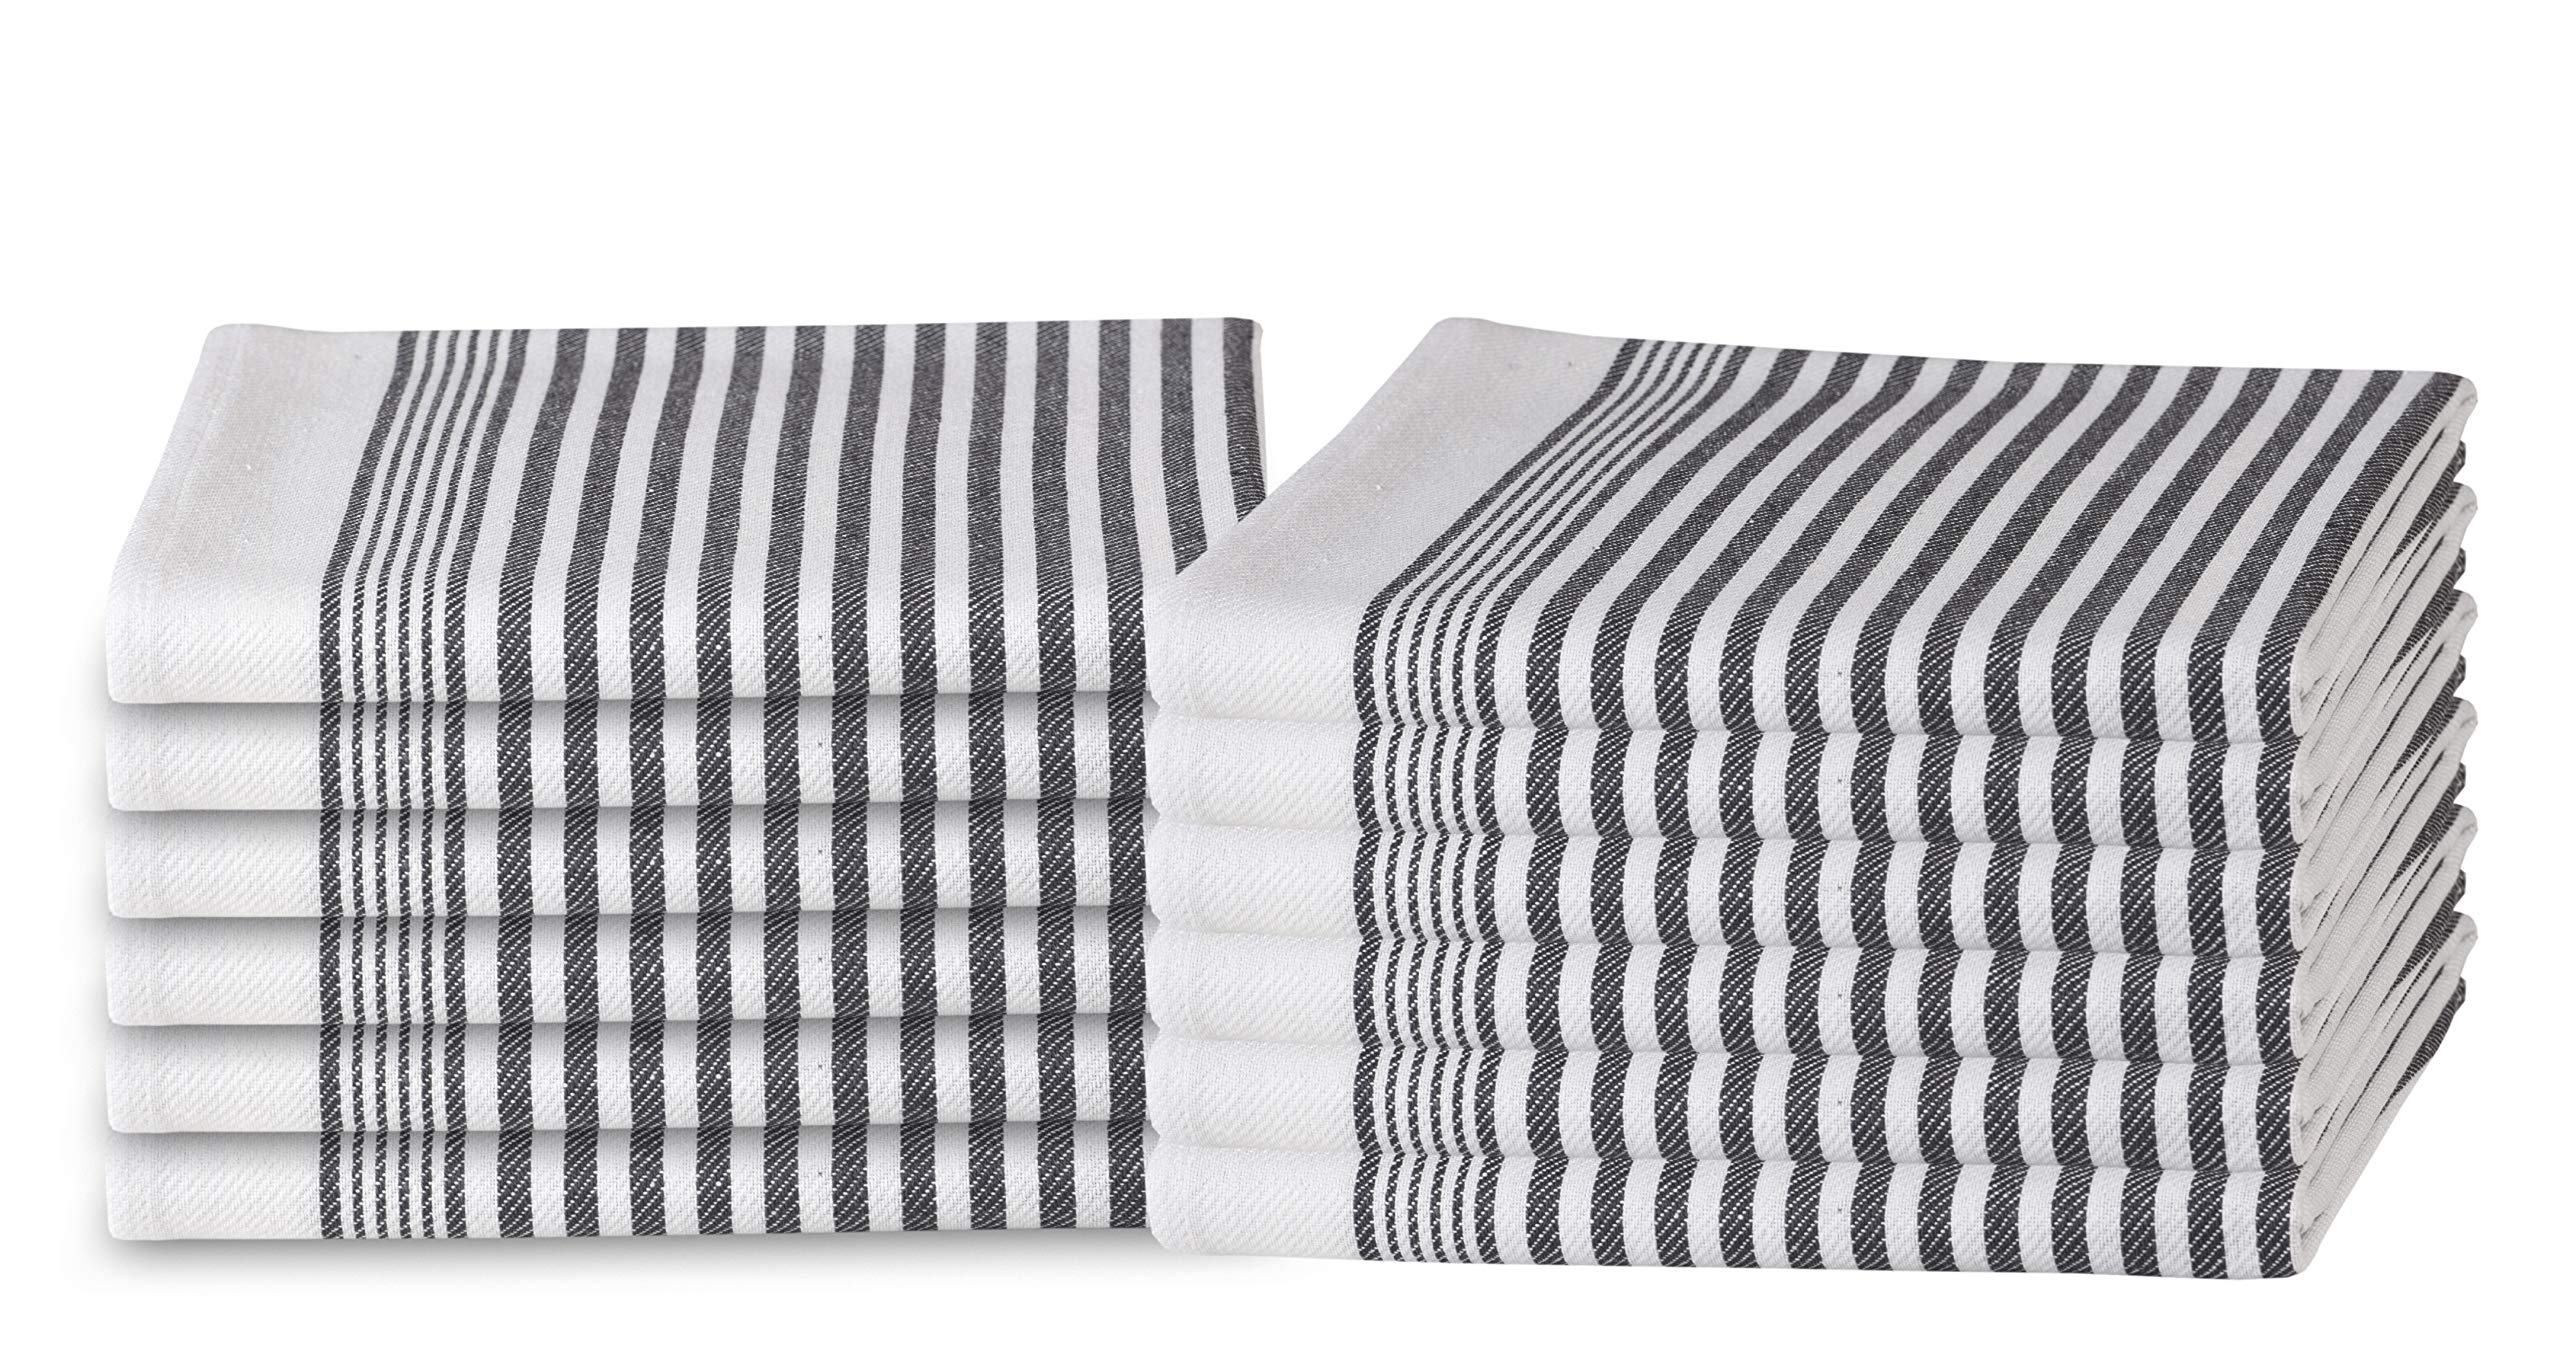 GLAMBURG 100% Cotton Kitchen Towels and Dish Cloth Sets, 12 Pack 18x28 Classic Stripe Dish Towels,Tea Towels,Bar Towels, Cleaning Towels, Highly Absorbent Dishcloth,Kitchen Towel Set - Charcoal Grey